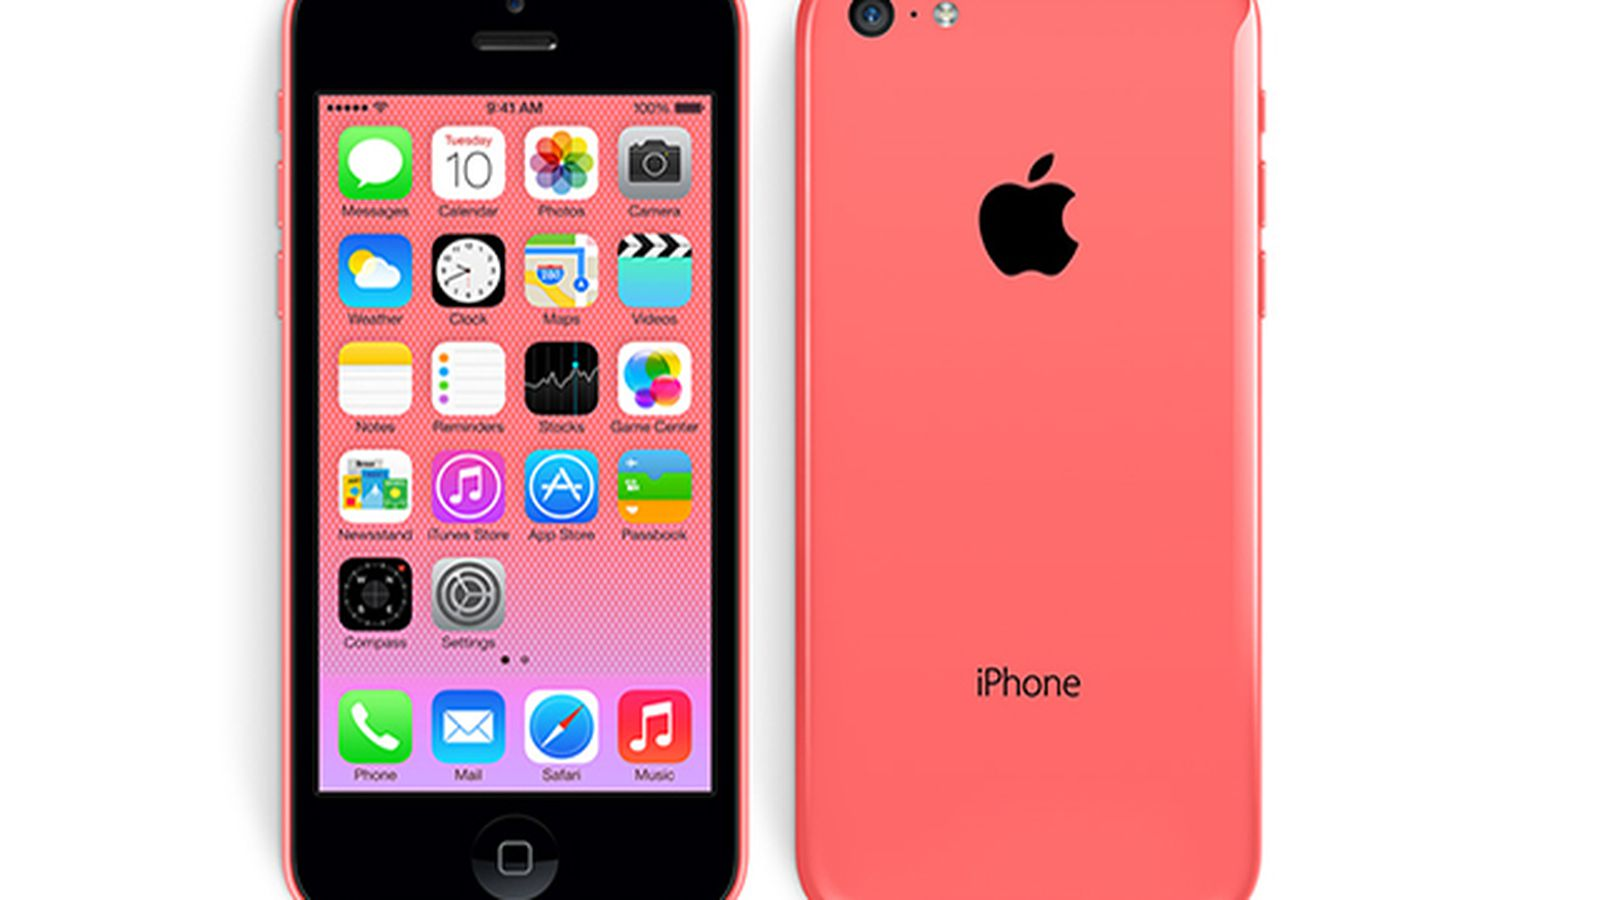 iphone 5 for cheap the iphone 5c isn t a cheap iphone it s just a colorful 5773